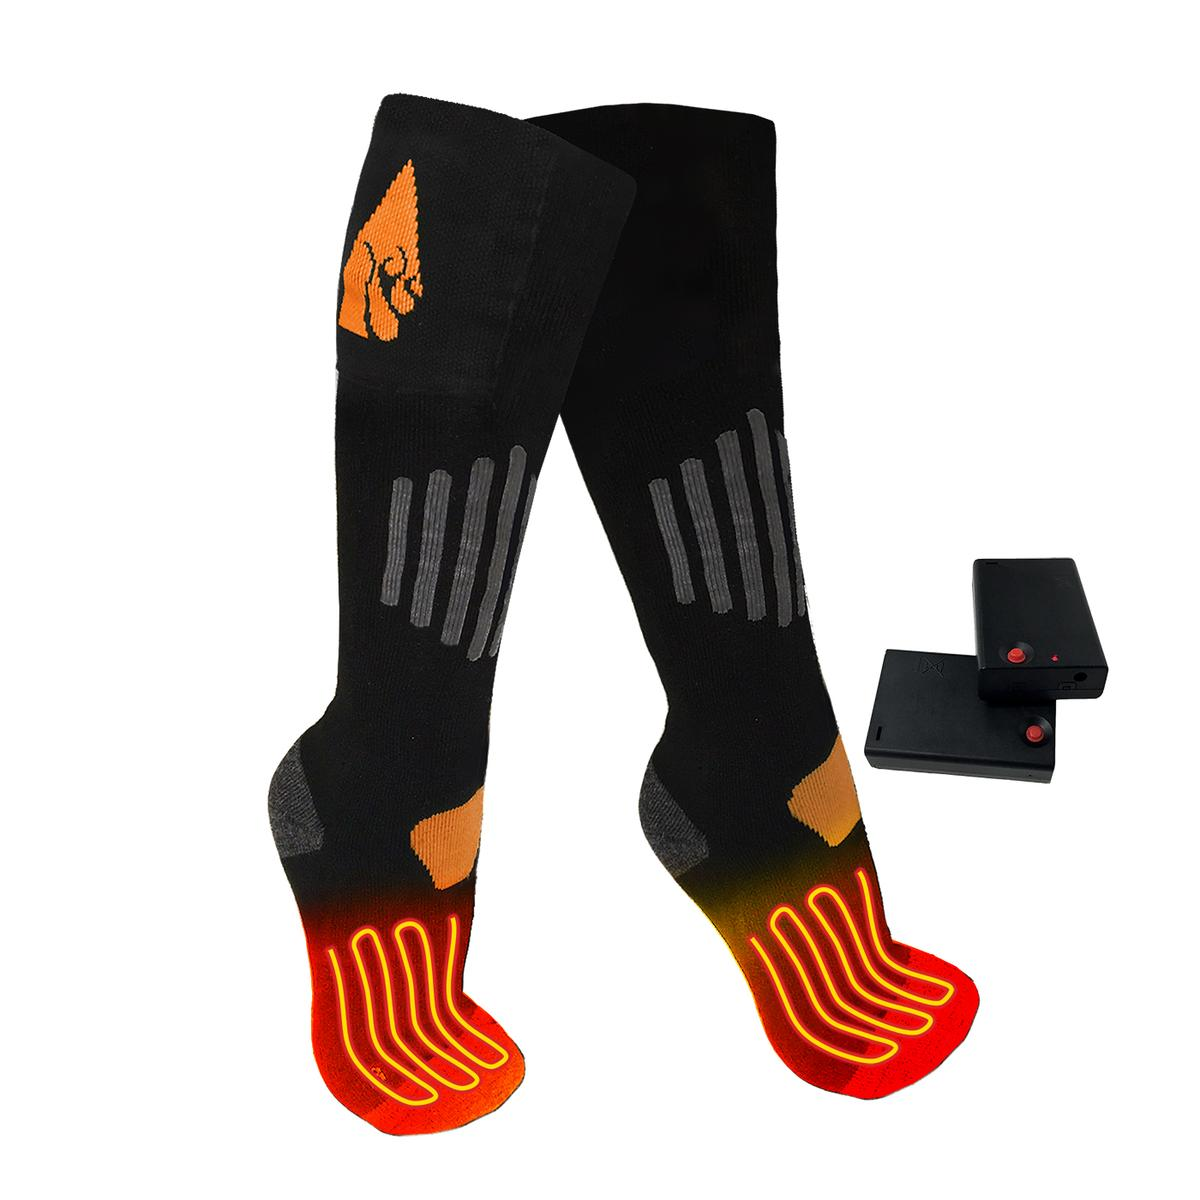 Open Box ActionHeat AA Heated Socks - Heated